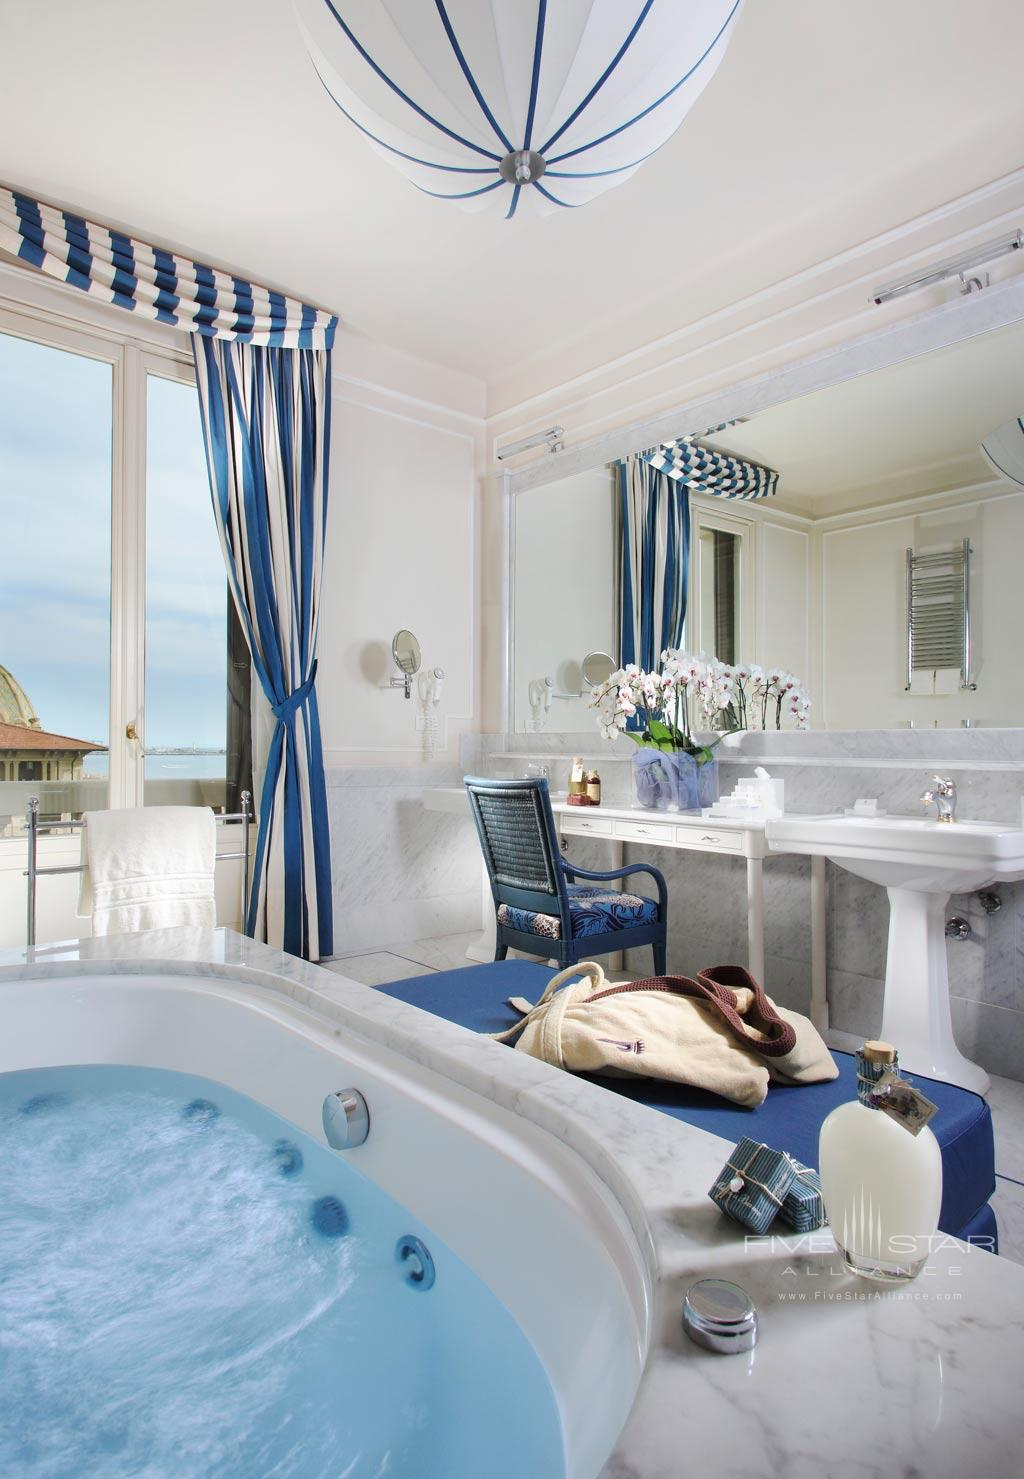 Sea View and Jacuzzi Junior Suite at Grand Hotel Principe di Piemonte, Viareggio LU, Italy